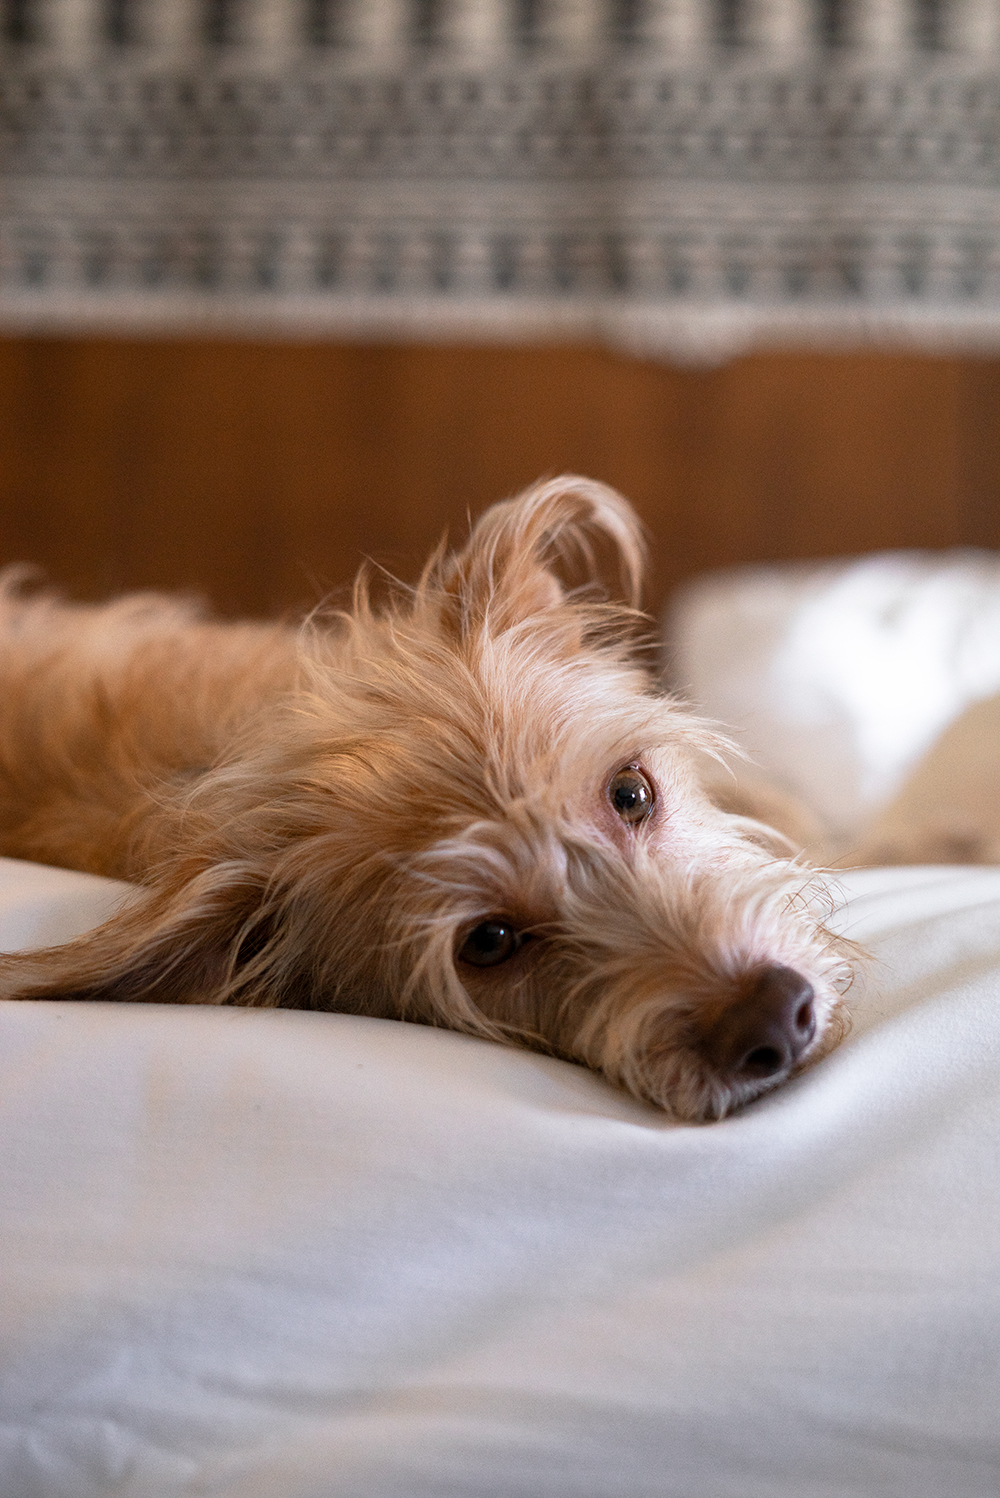 09goodland-santabarbara-hotel-travel-dog-terrier